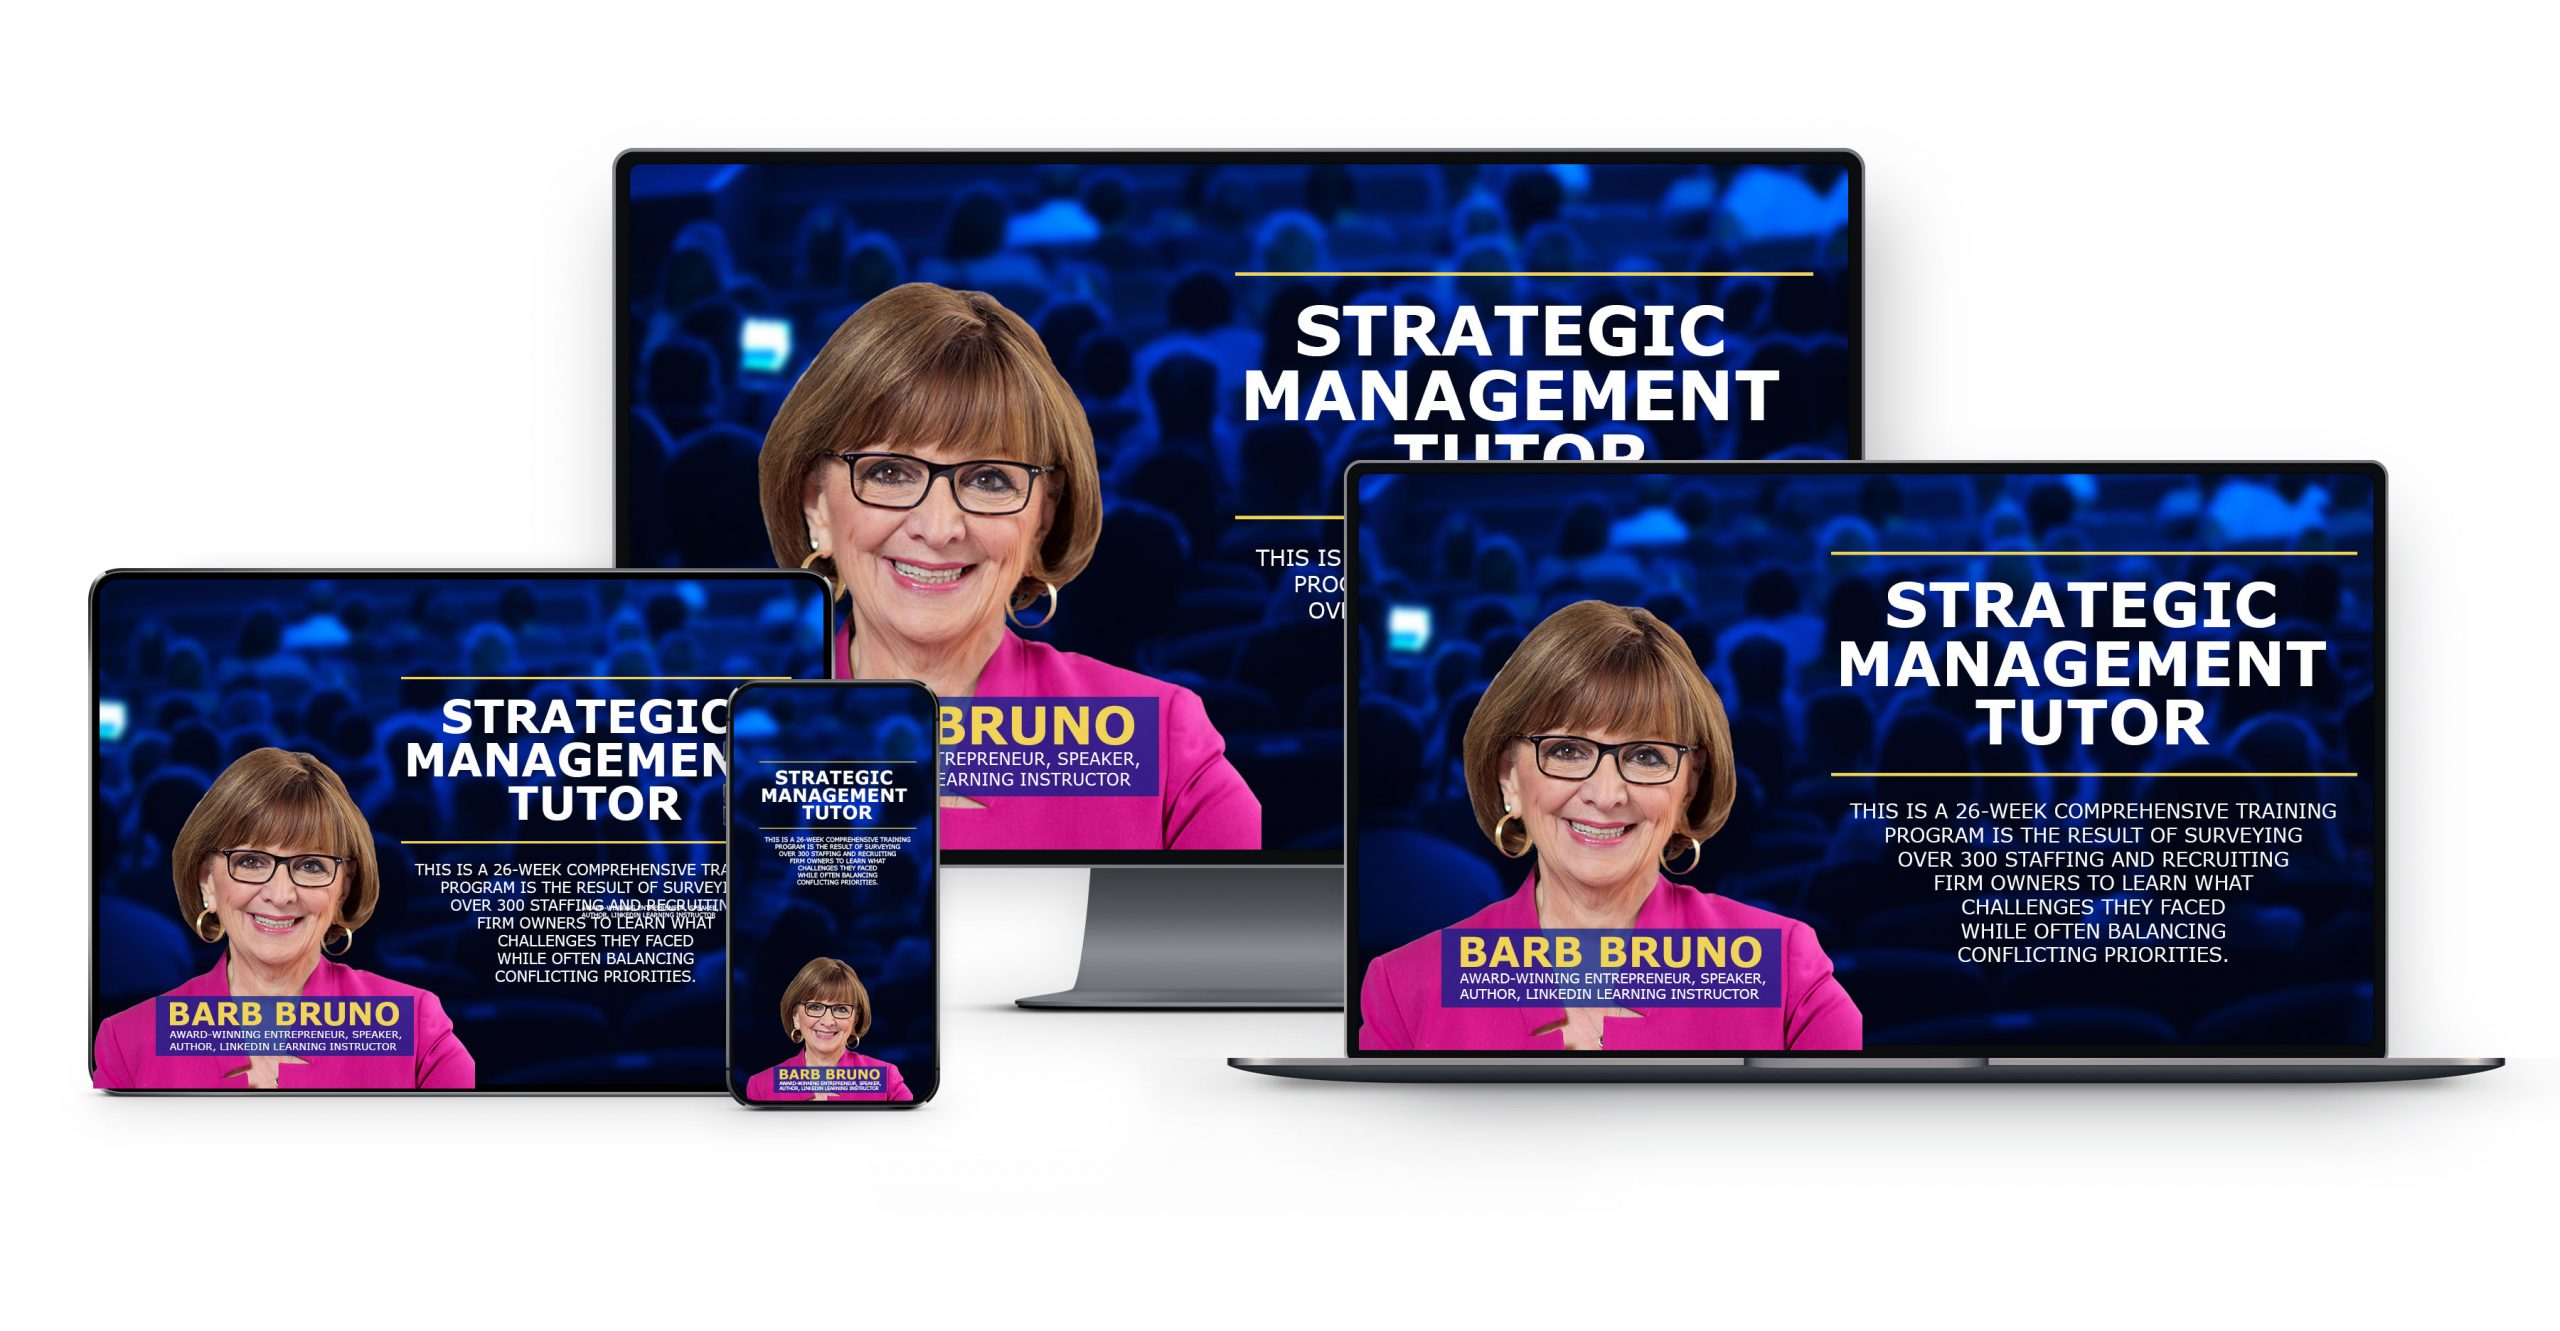 strategic-management-tutor